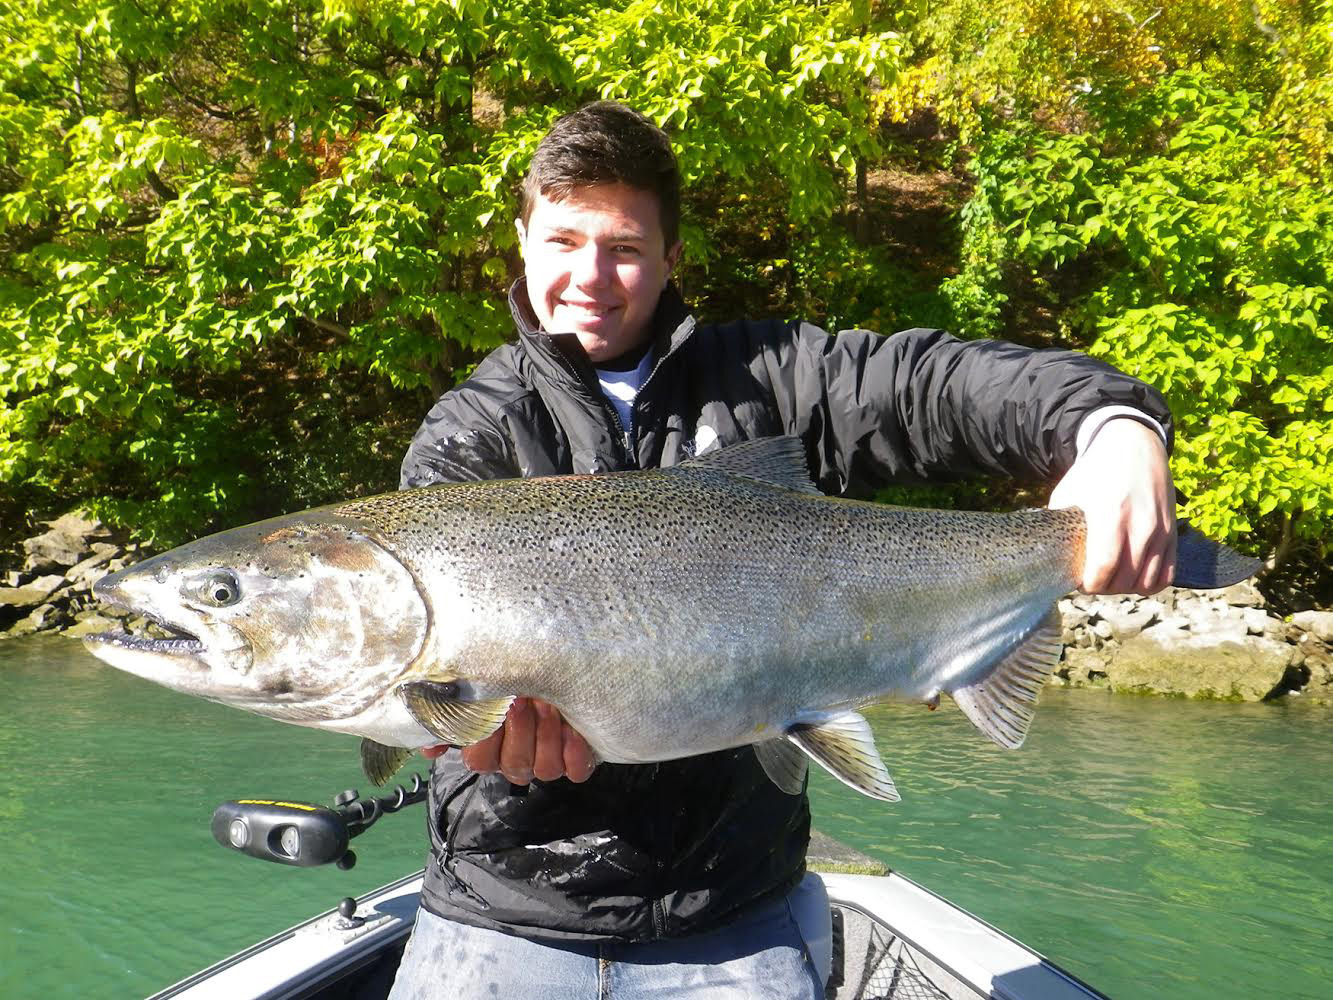 The big ticket item for the Lake Ontario fishery is the king salmon, as Ben Bailey can attest to.